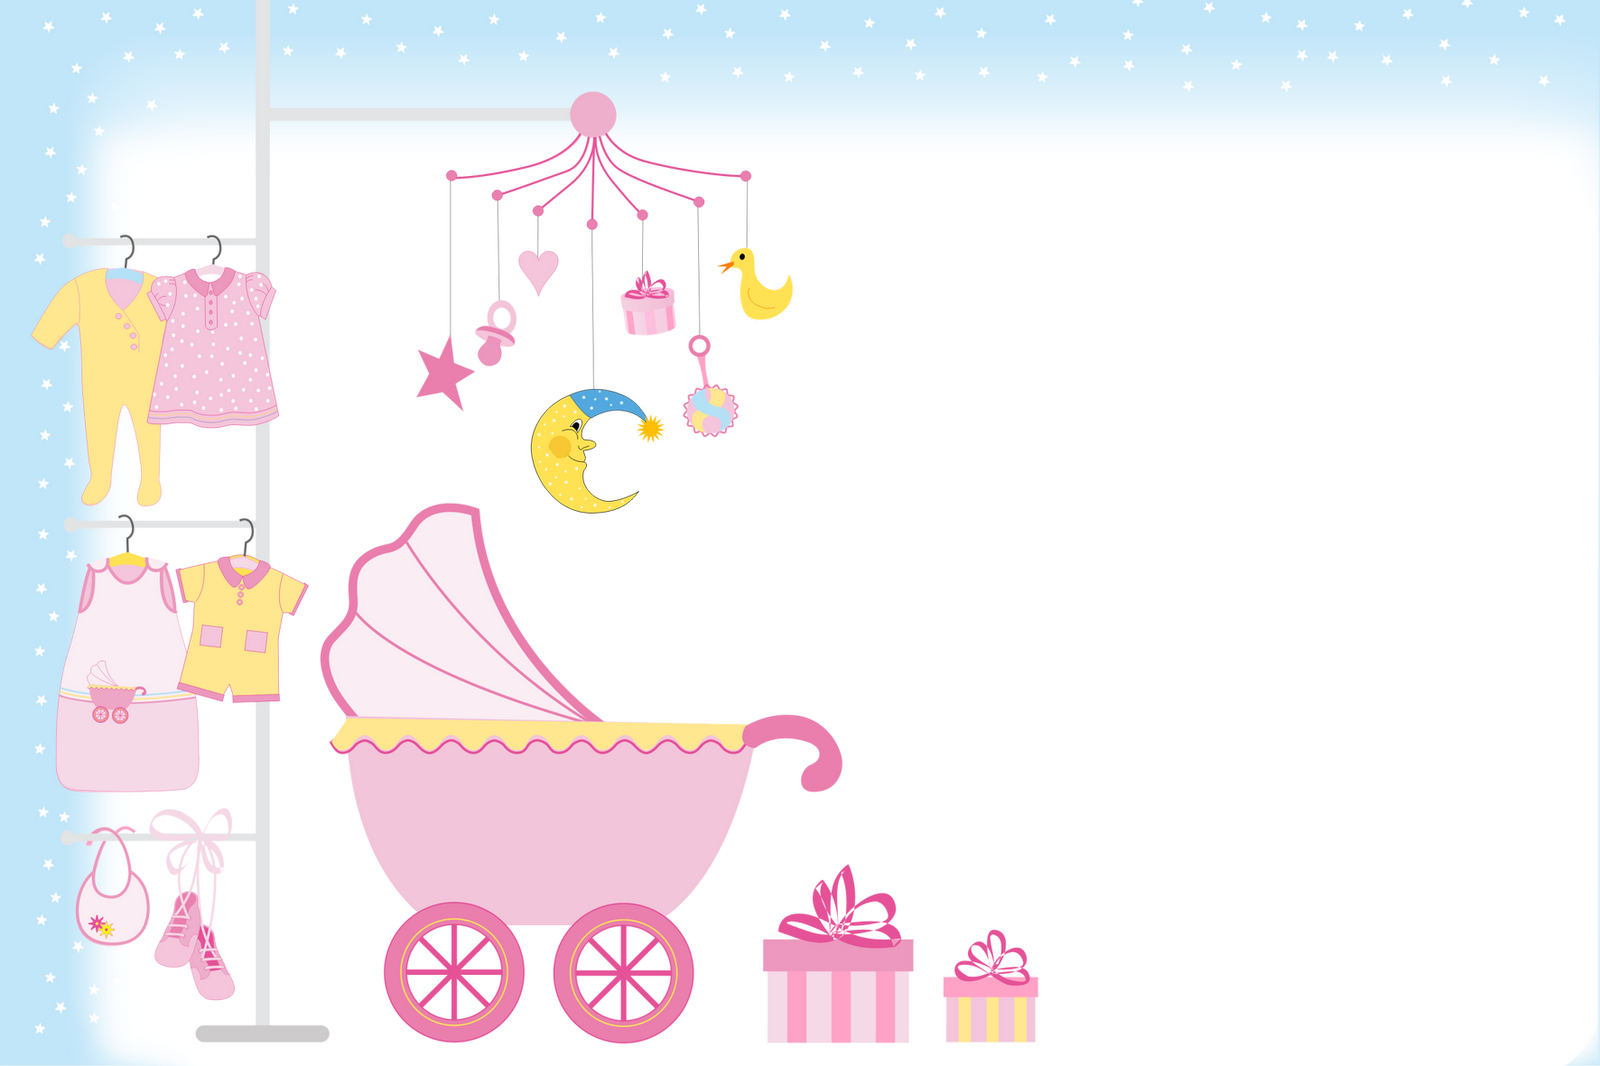 Baby book clipart free png clip freeuse Baby Transparent PNG Pictures - Free Icons and PNG Backgrounds clip freeuse